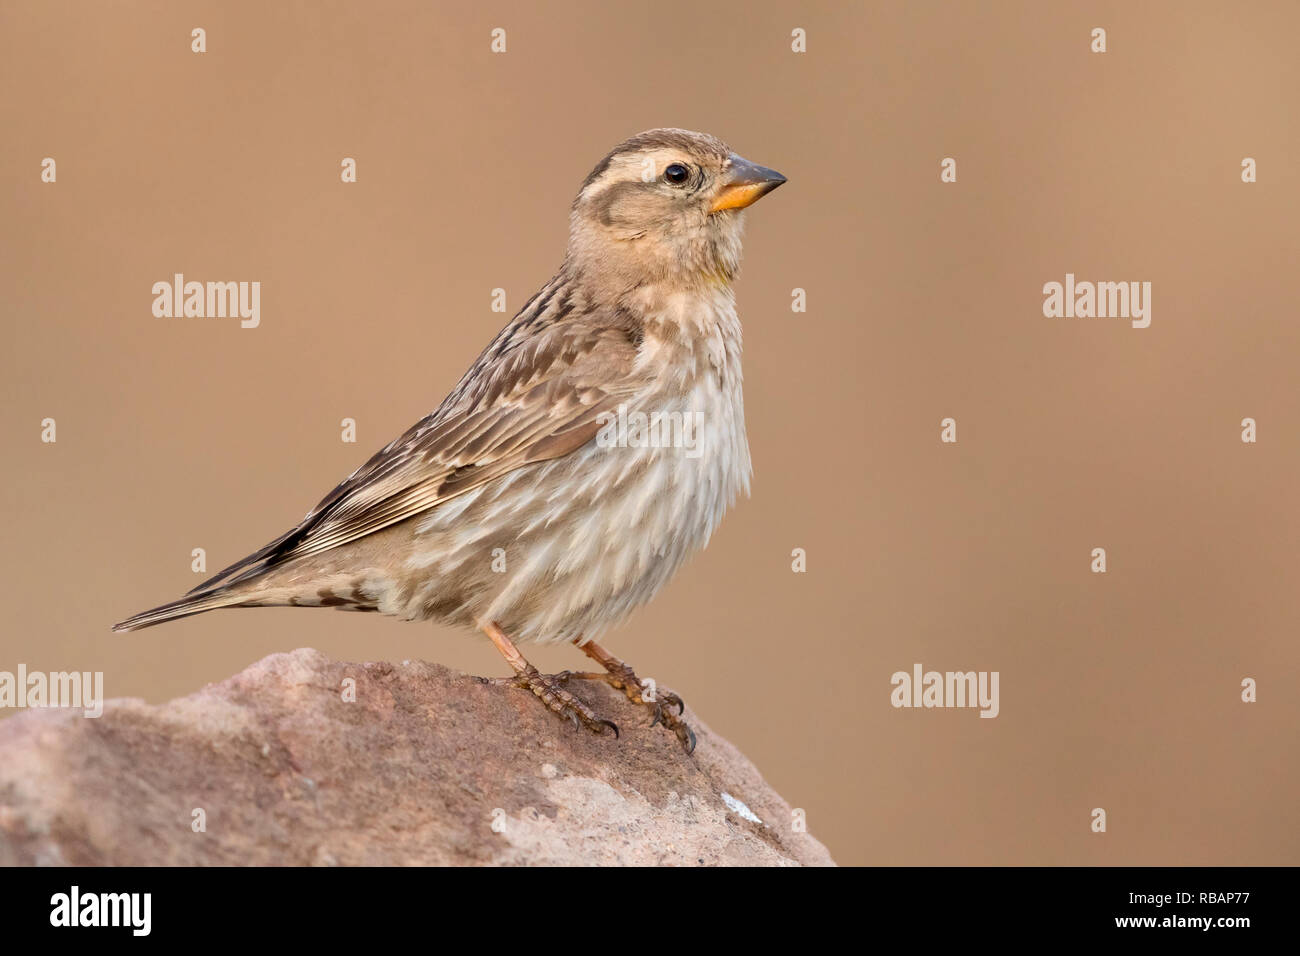 Rock Sparrow (Petronia petronia barbara),side view of an adult standing on a stone - Stock Image